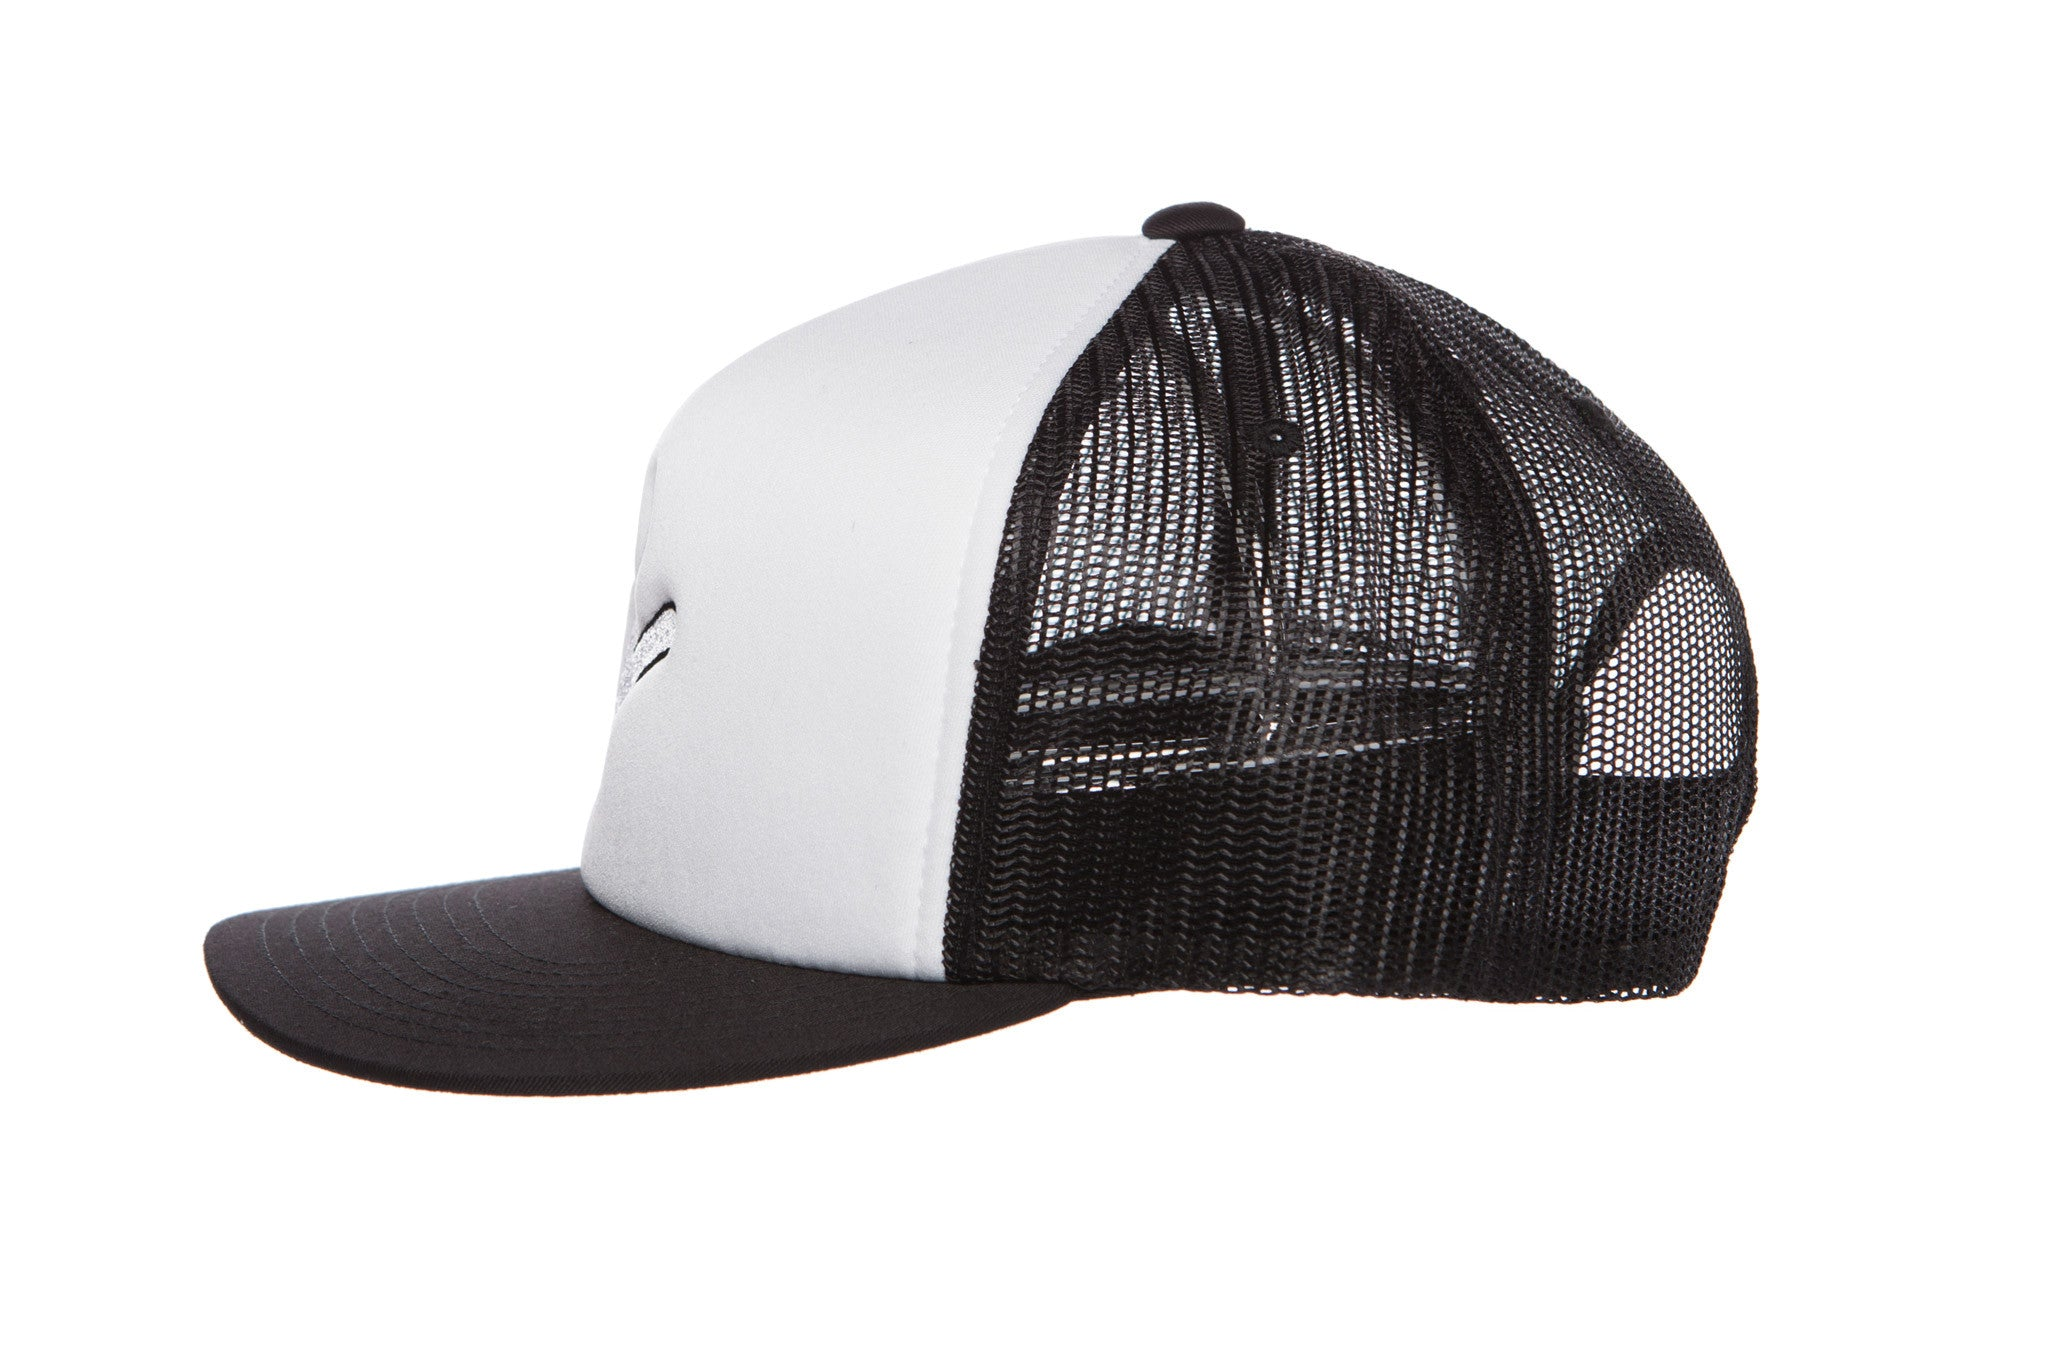 RaceKraft Trucker Cap (Black/White)